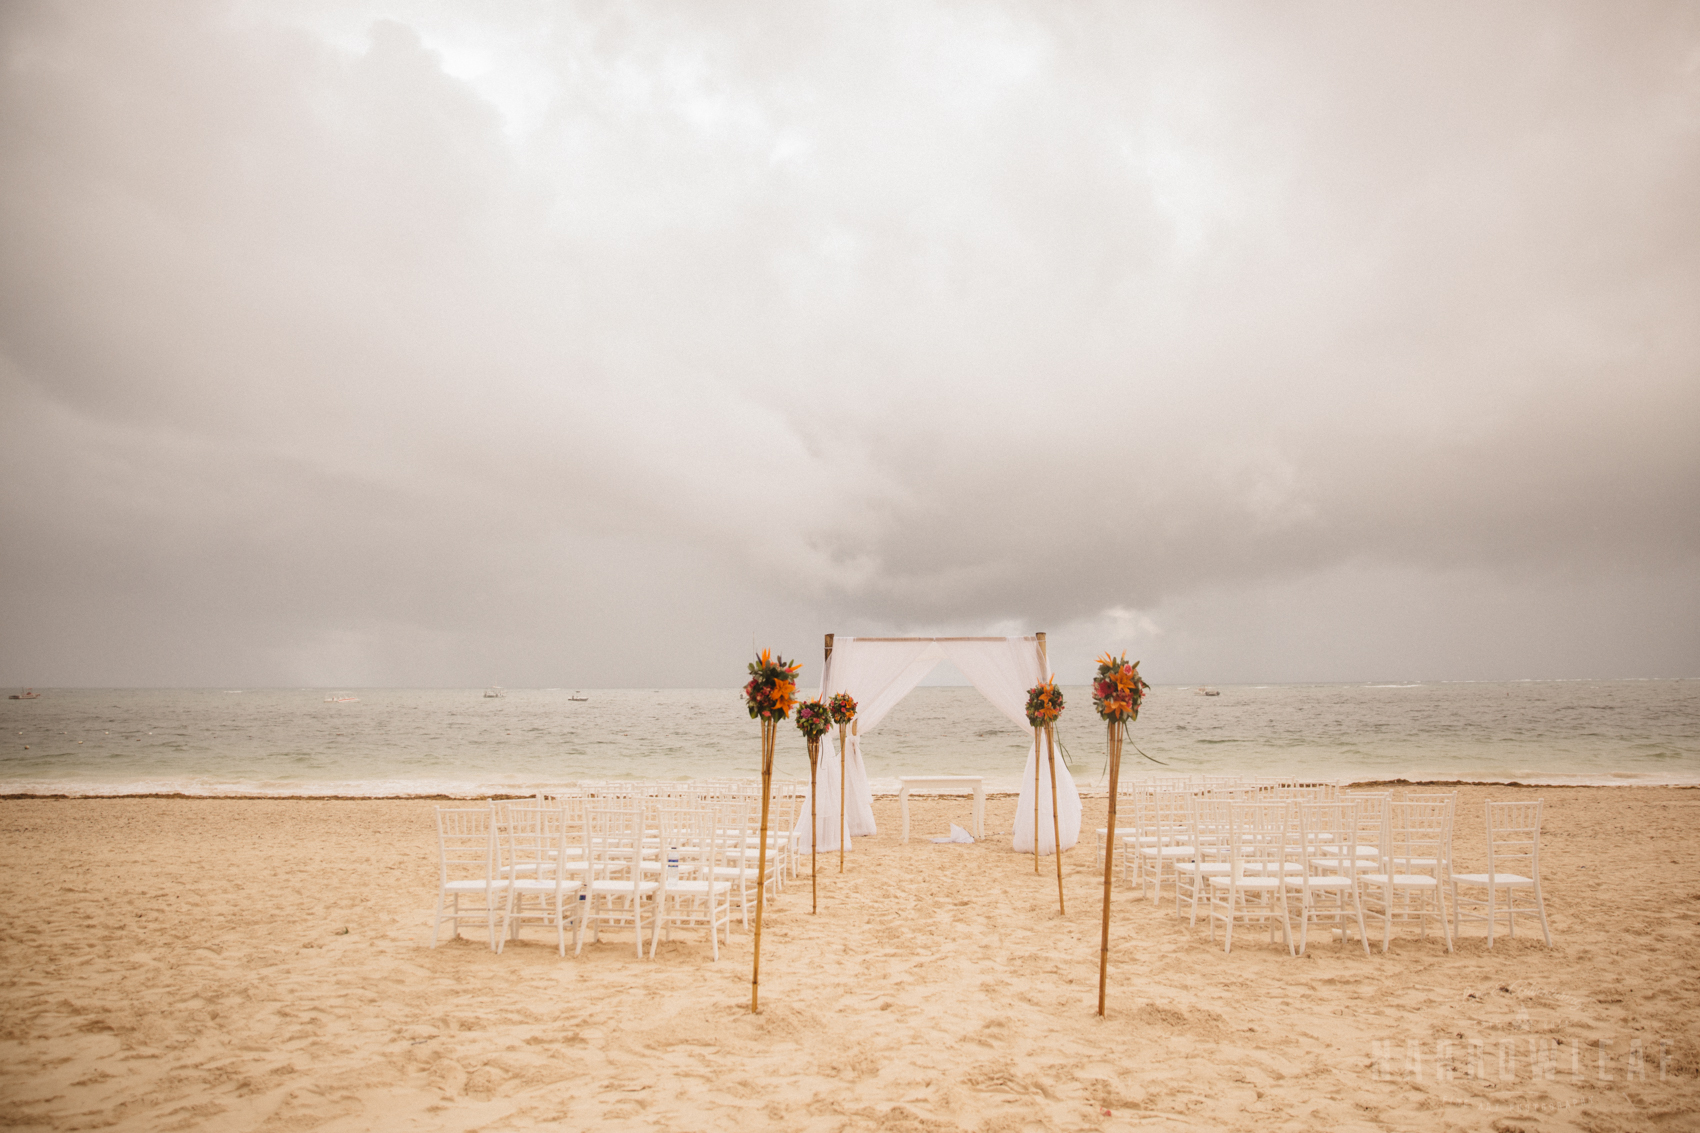 punta-cana-dominican-republic-destination-wedding-beach-ceremony-6961.jpg